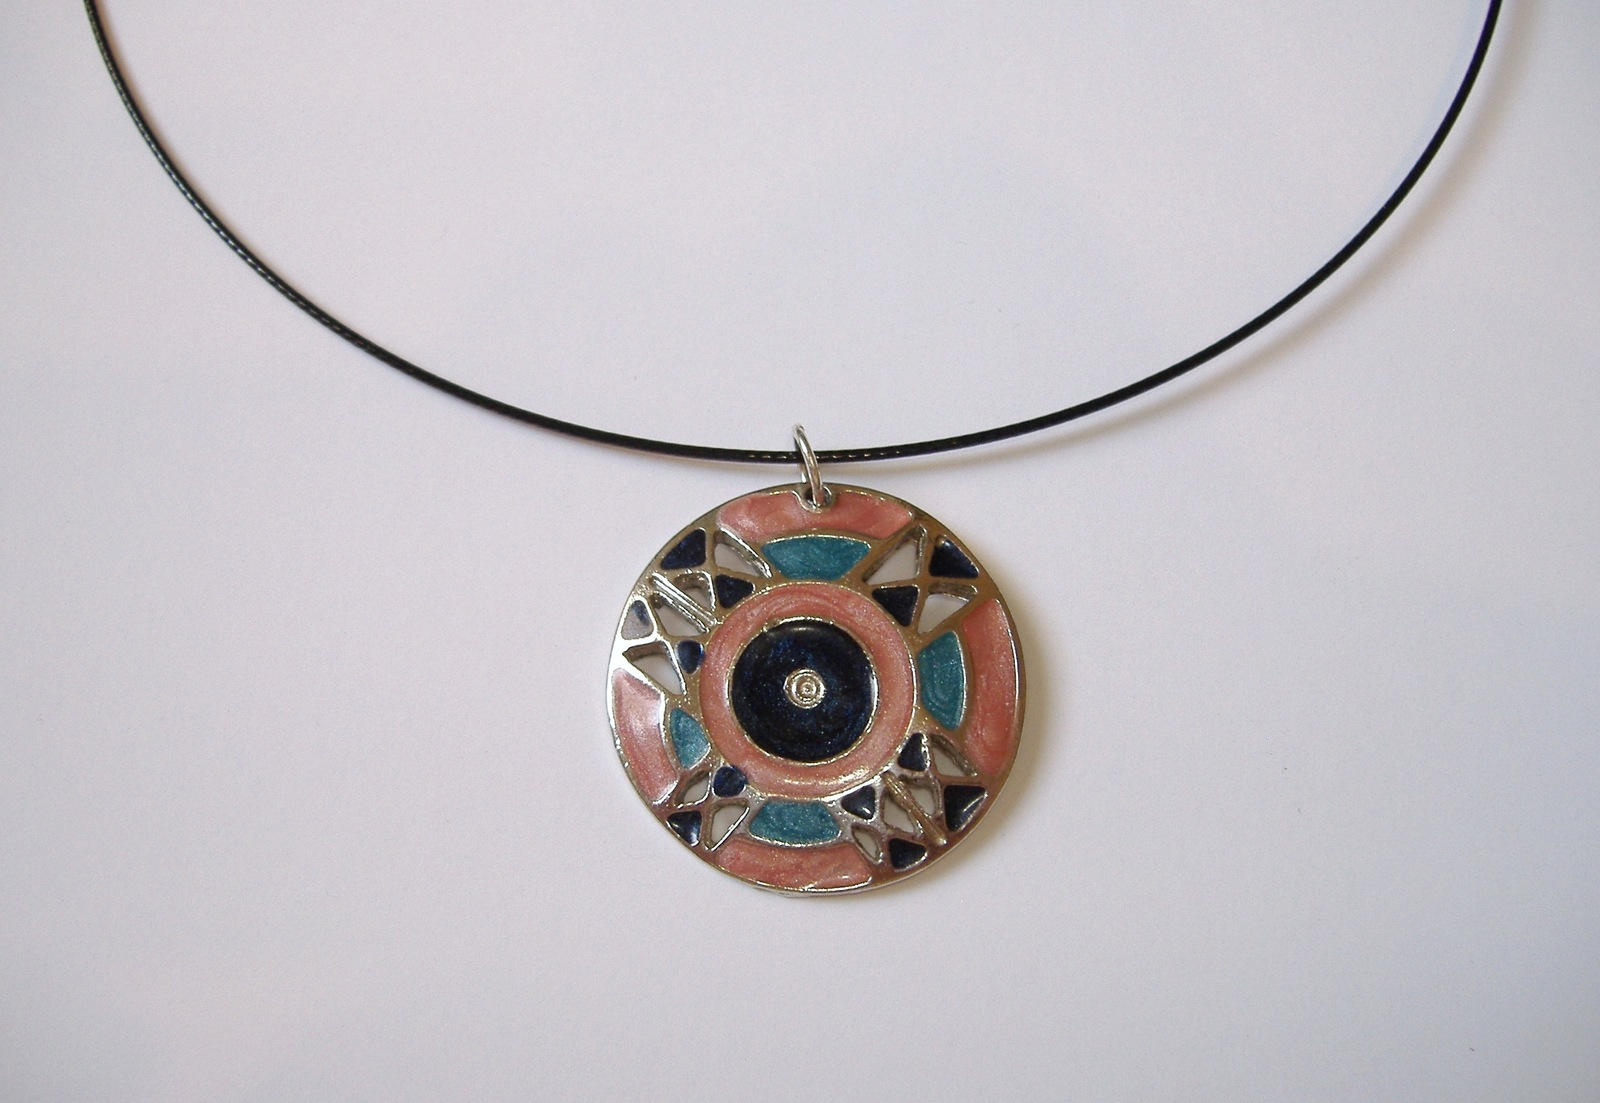 Pink Teal Enamel Silver Metal Pendant Black Neckwire Necklace Magnetic Close